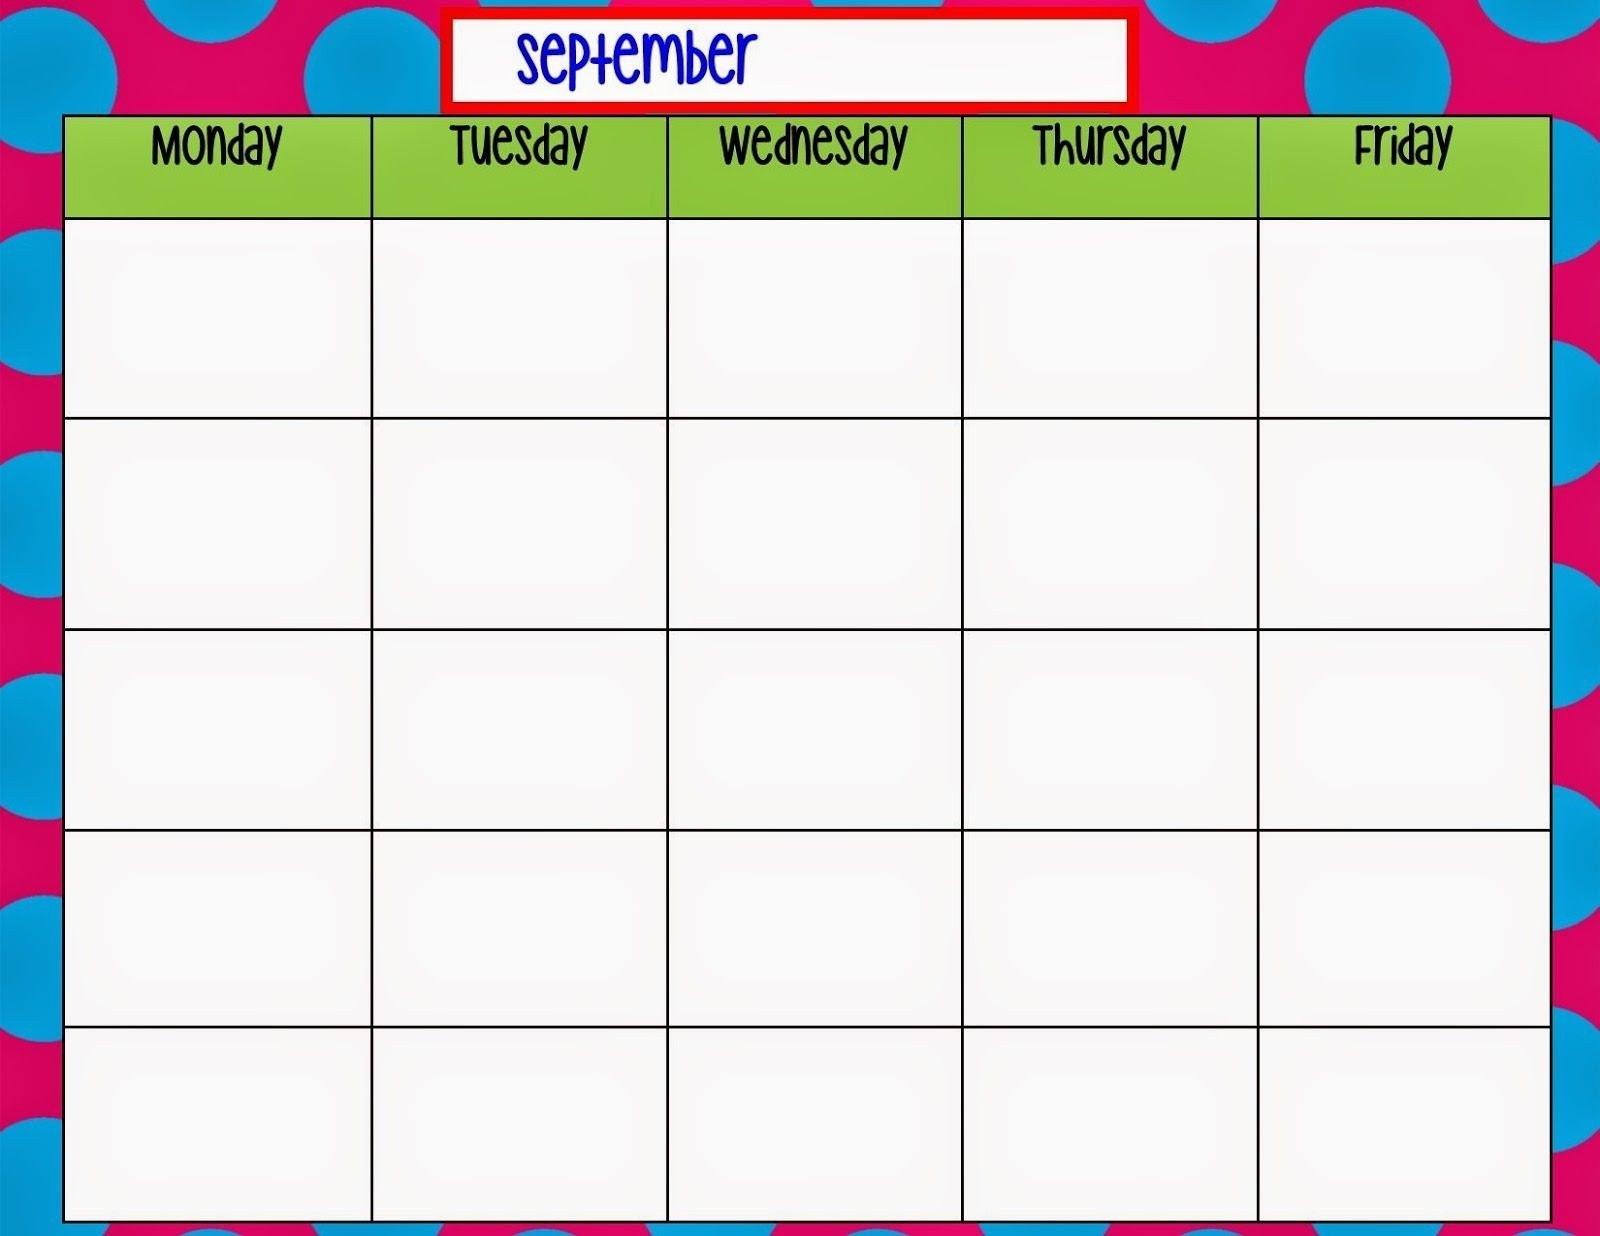 Monday Friday Monthly Calendar Template | Calendar Template Weekly Calendar Template Monday To Friday